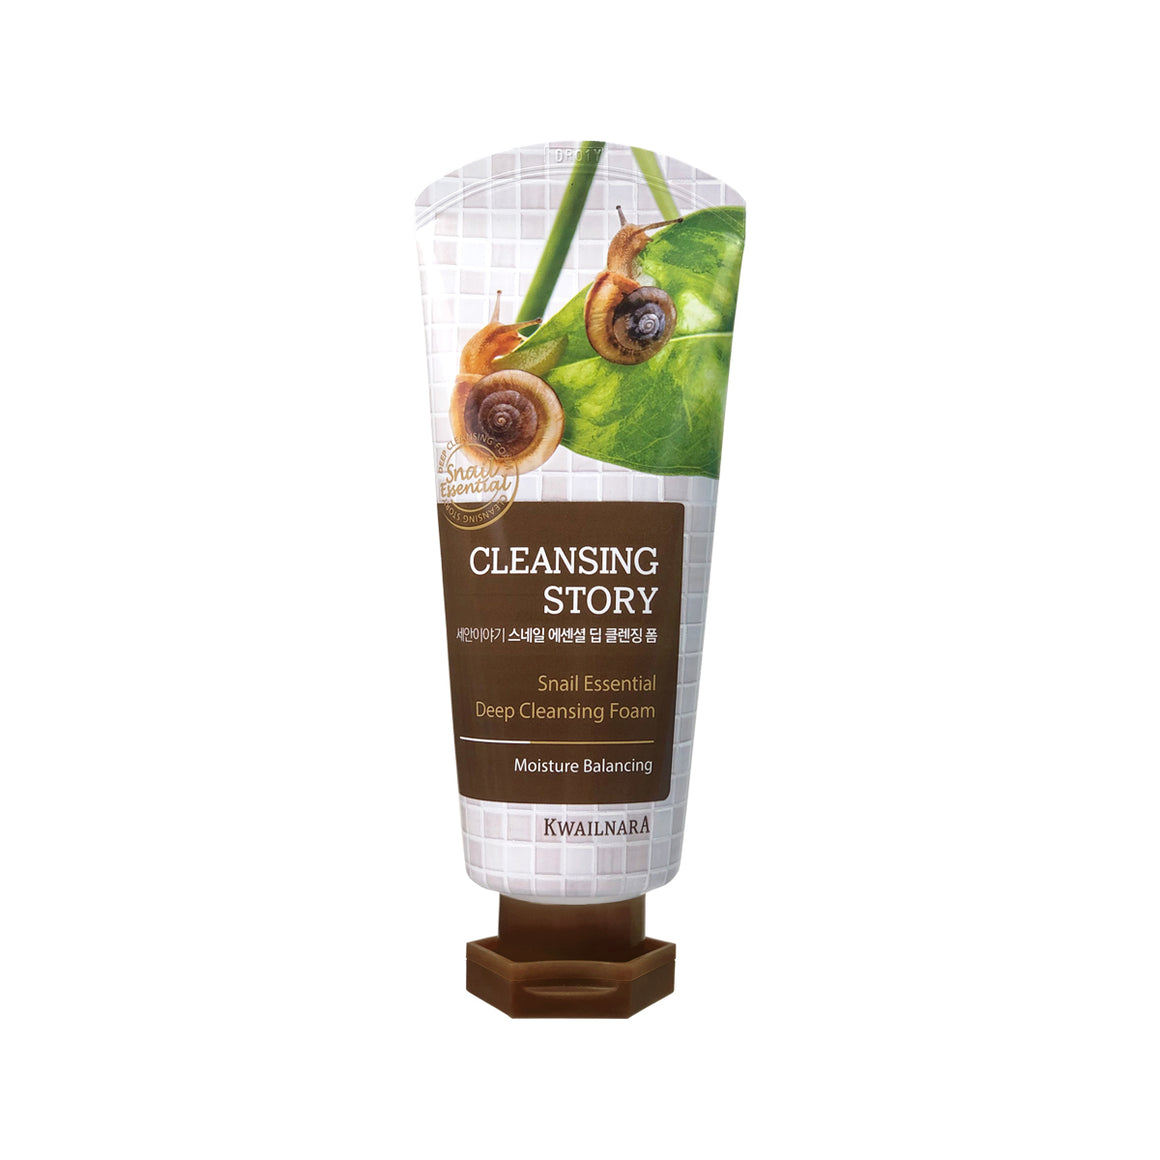 Snail Essential Deep Cleansing Foam